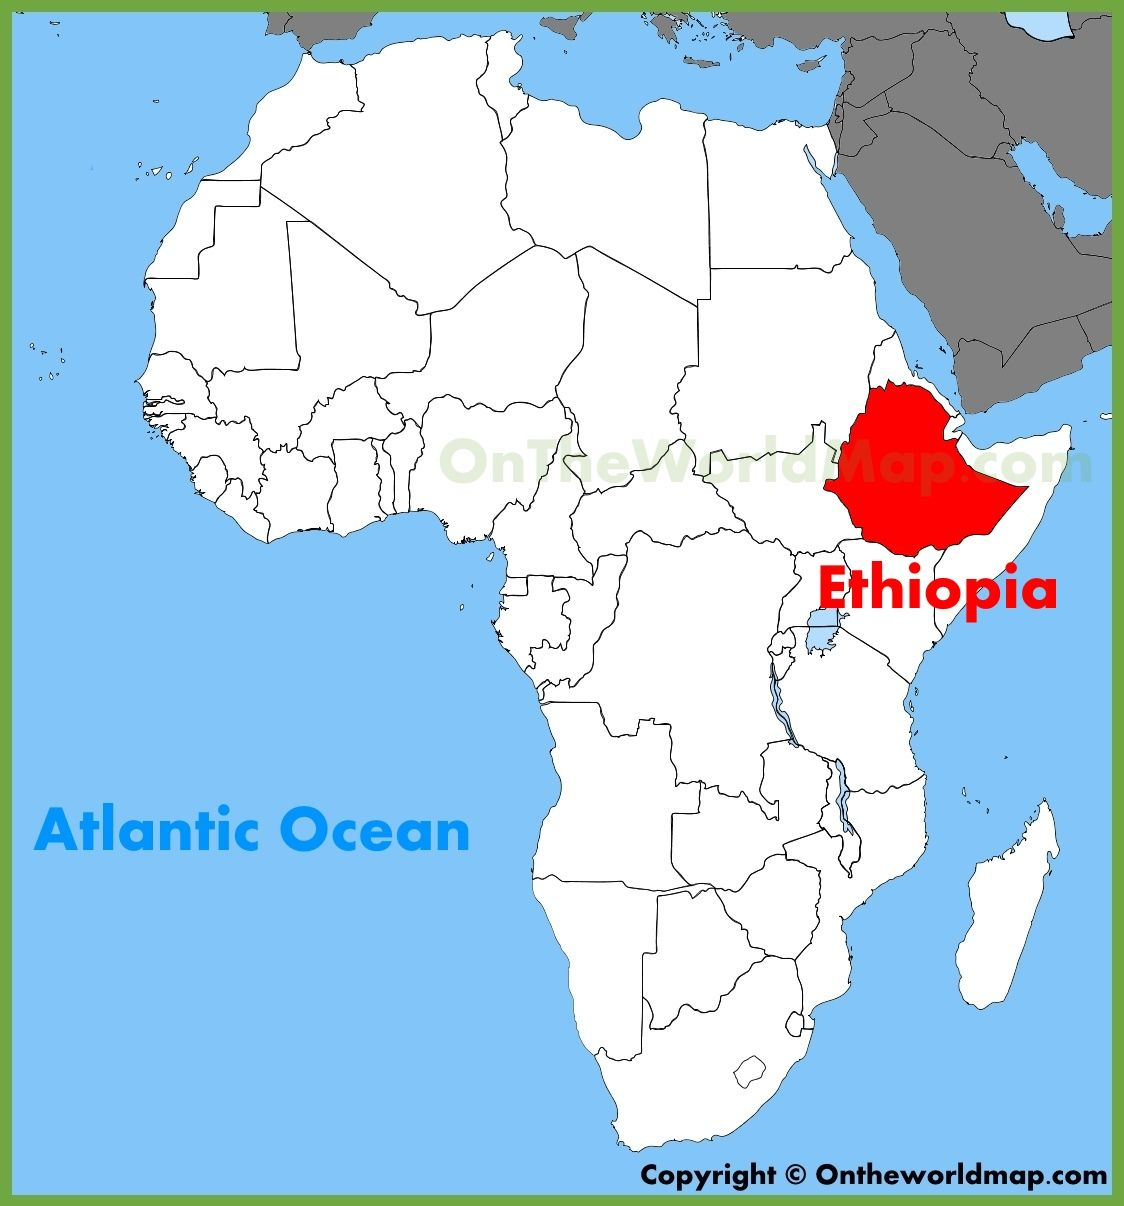 ethiopia-on-map-of-world